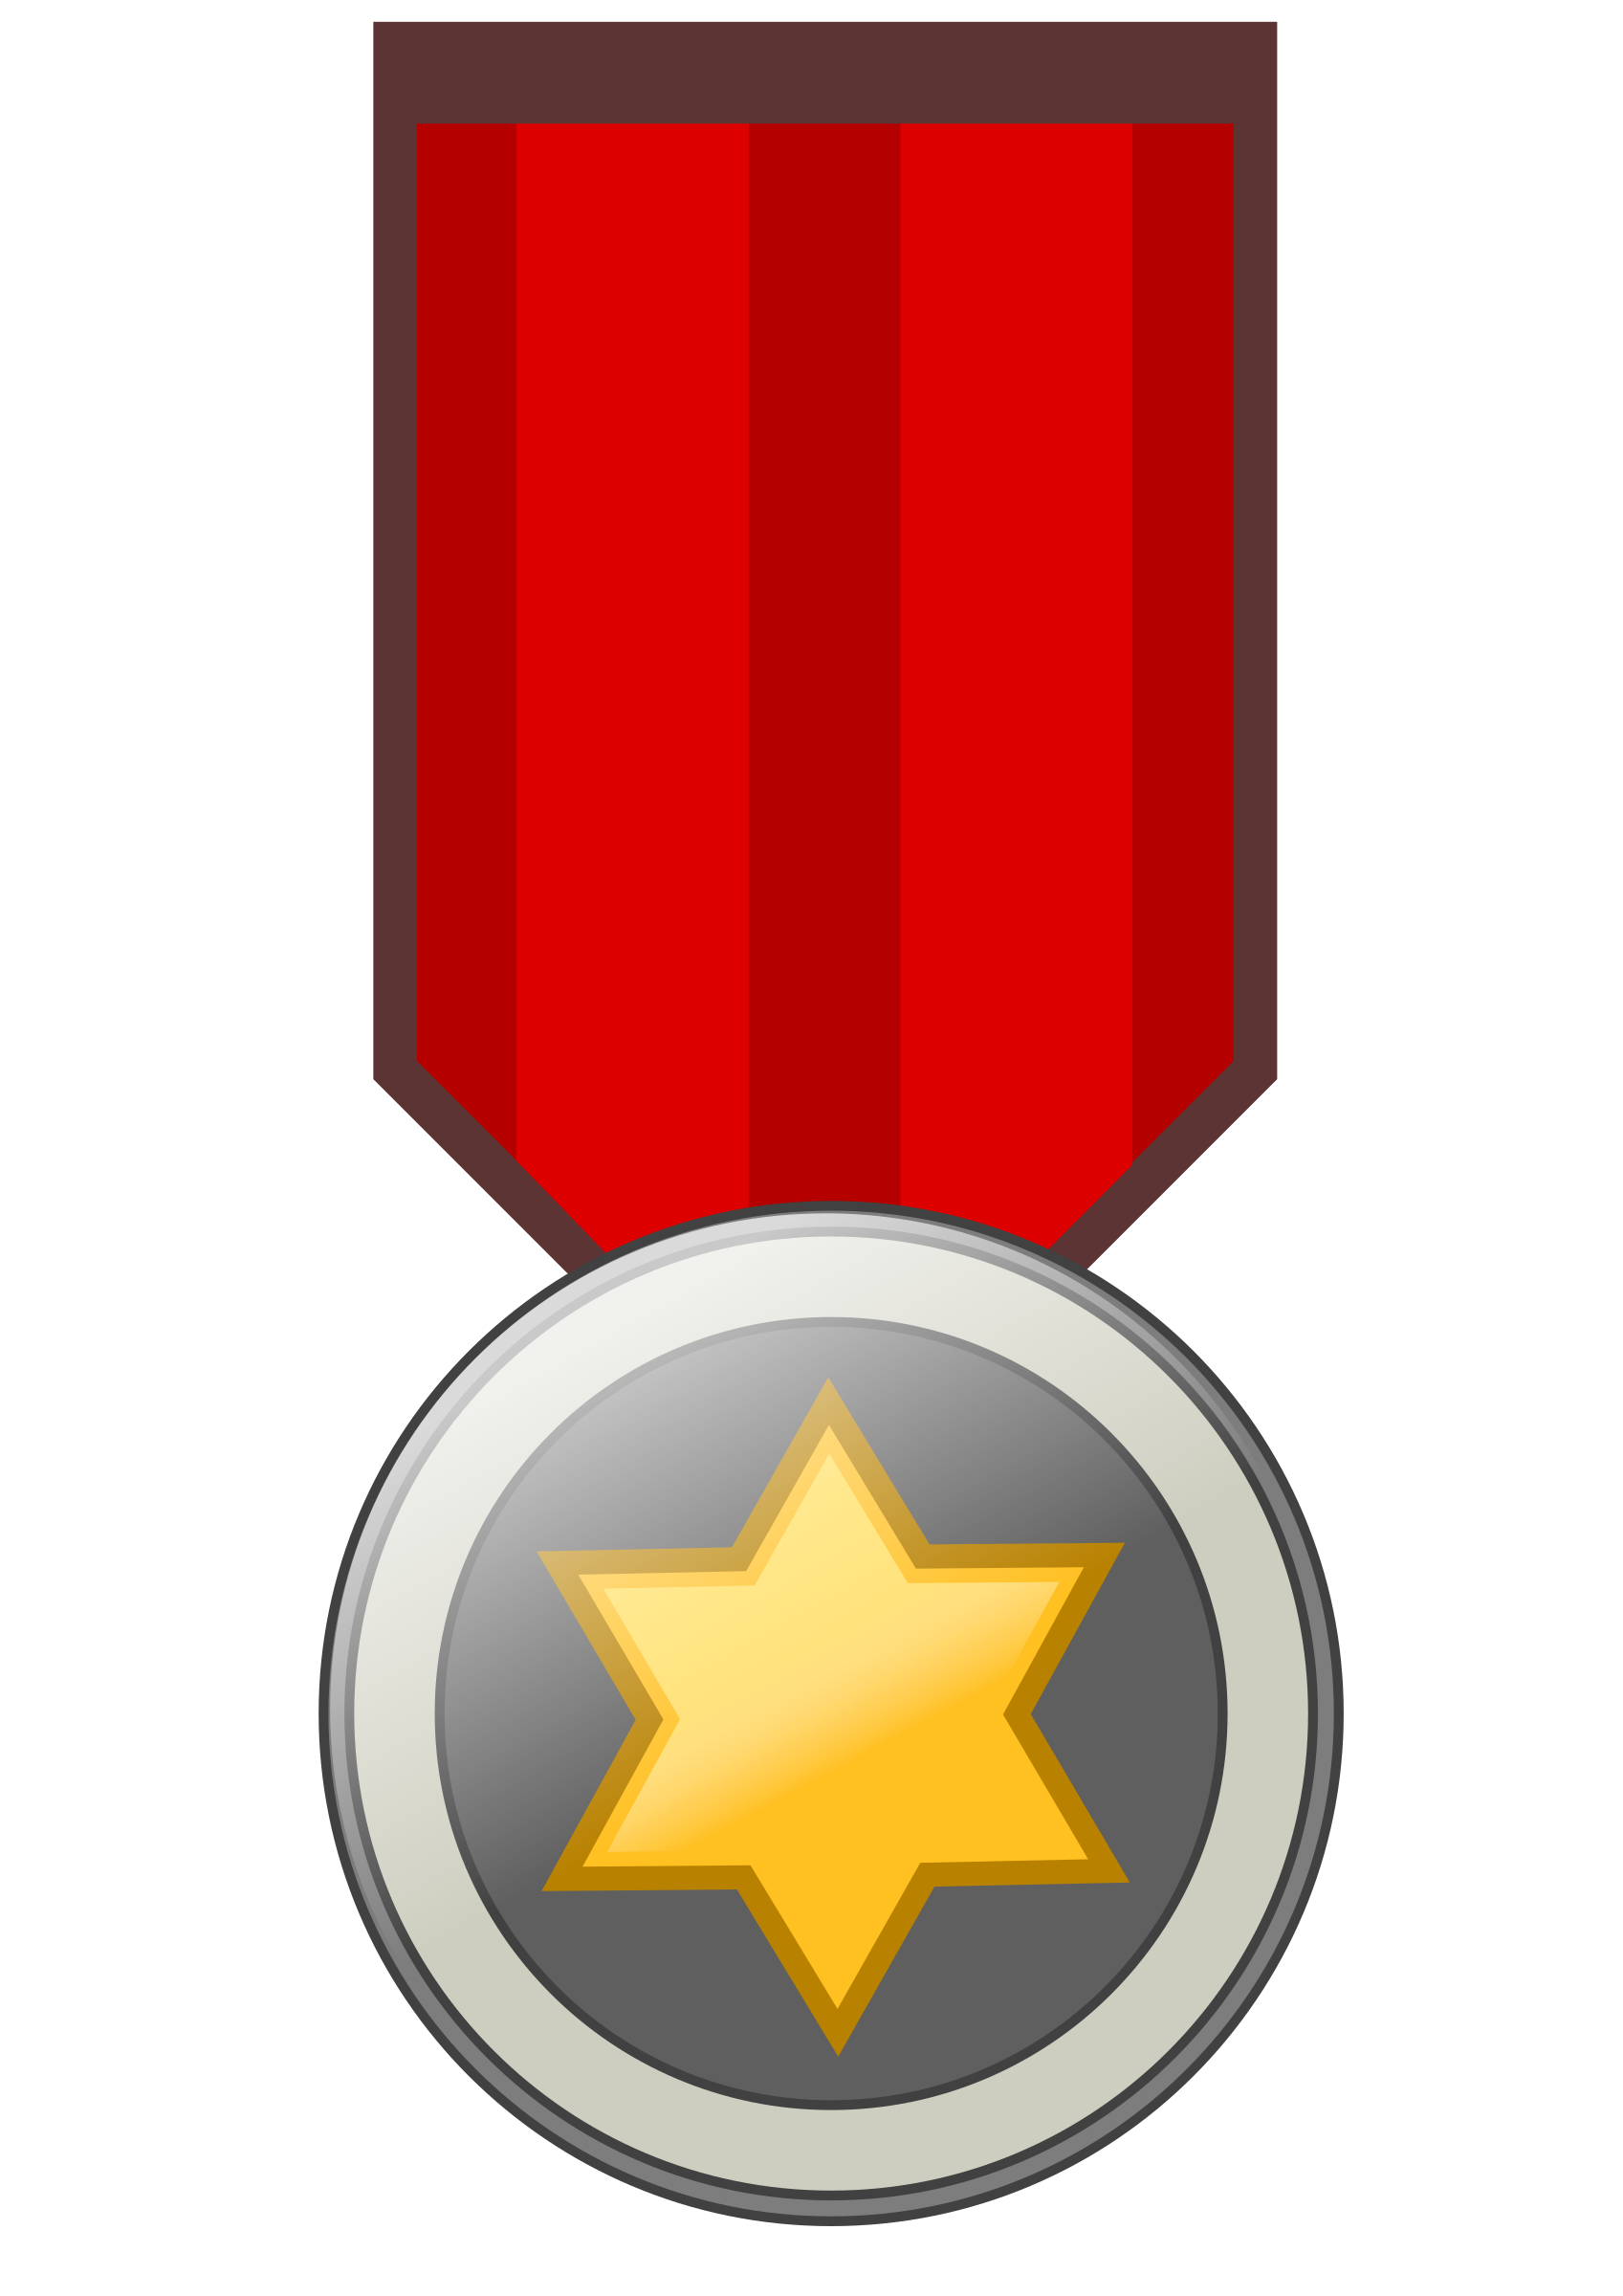 Silver award badge png. Star medal remix icons